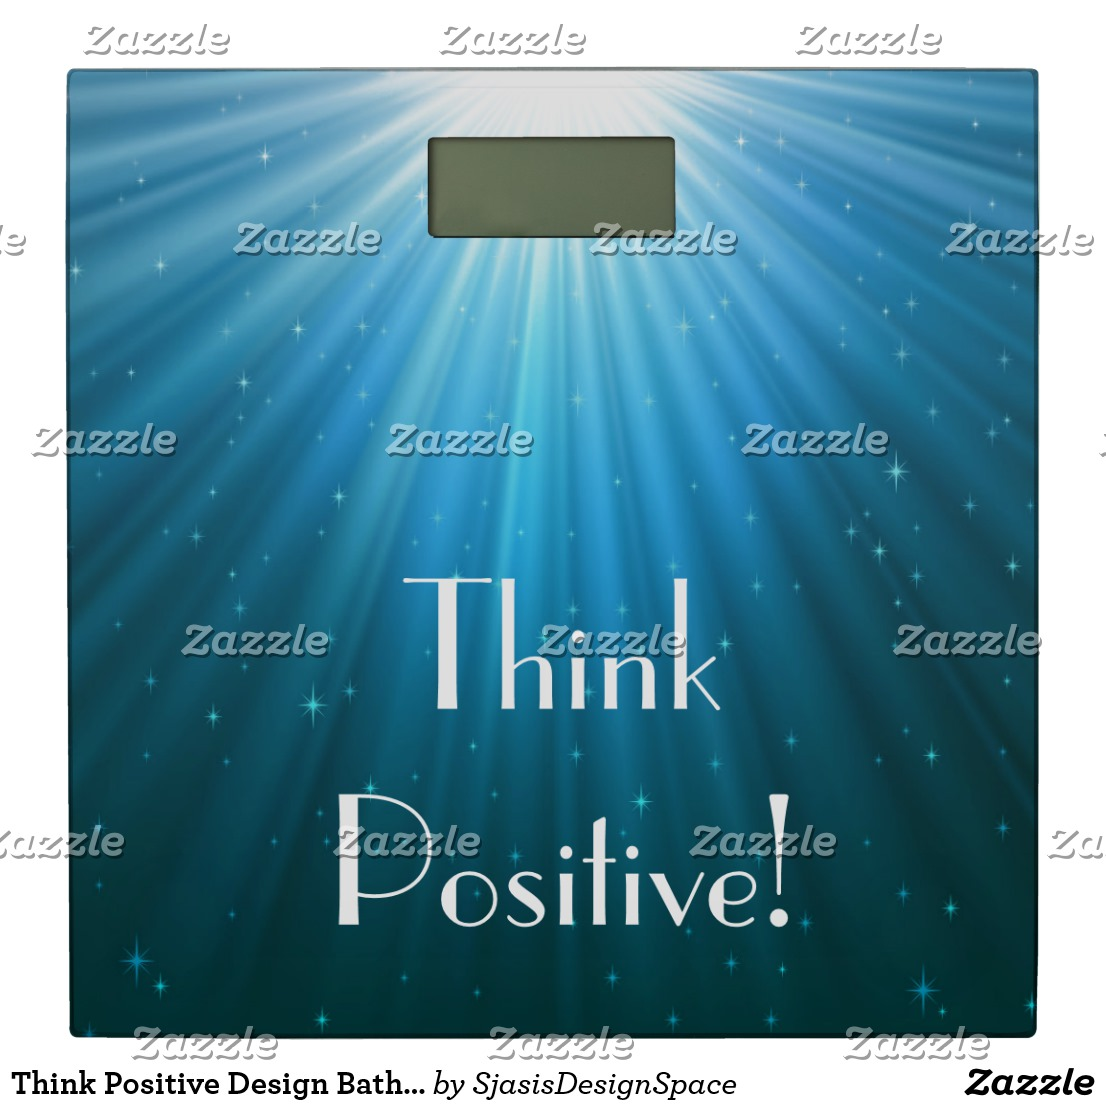 Bathroom Scale Think Positive Design Image